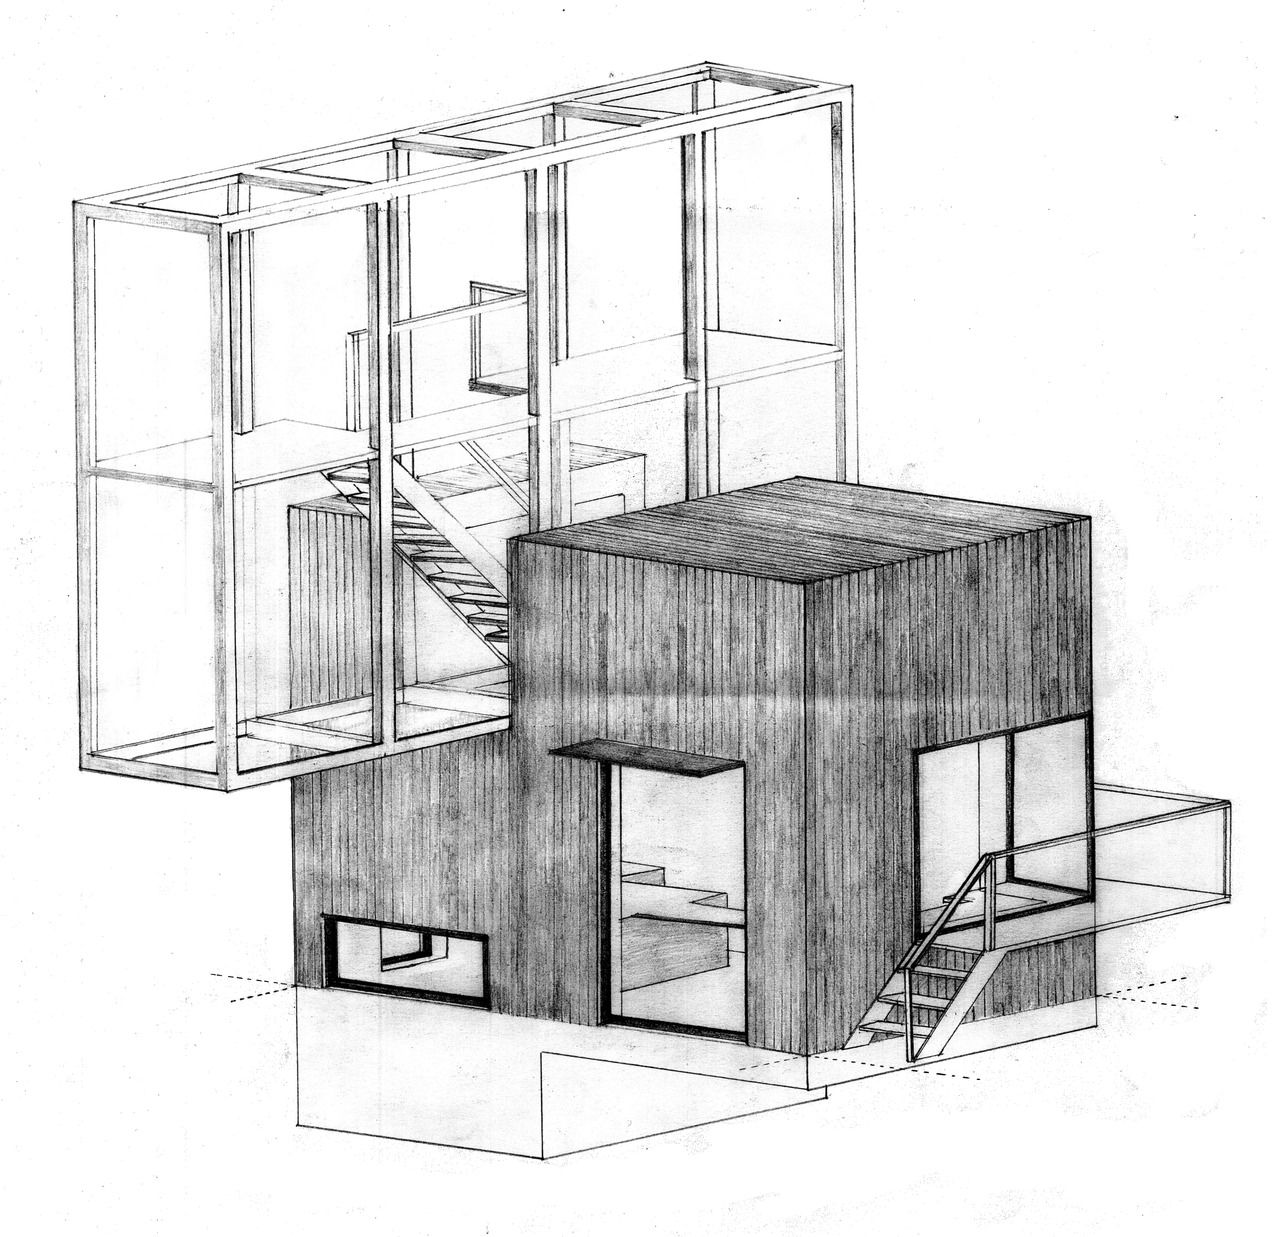 House A Troels Skov Carlsen Architecture Sketches Pinterest